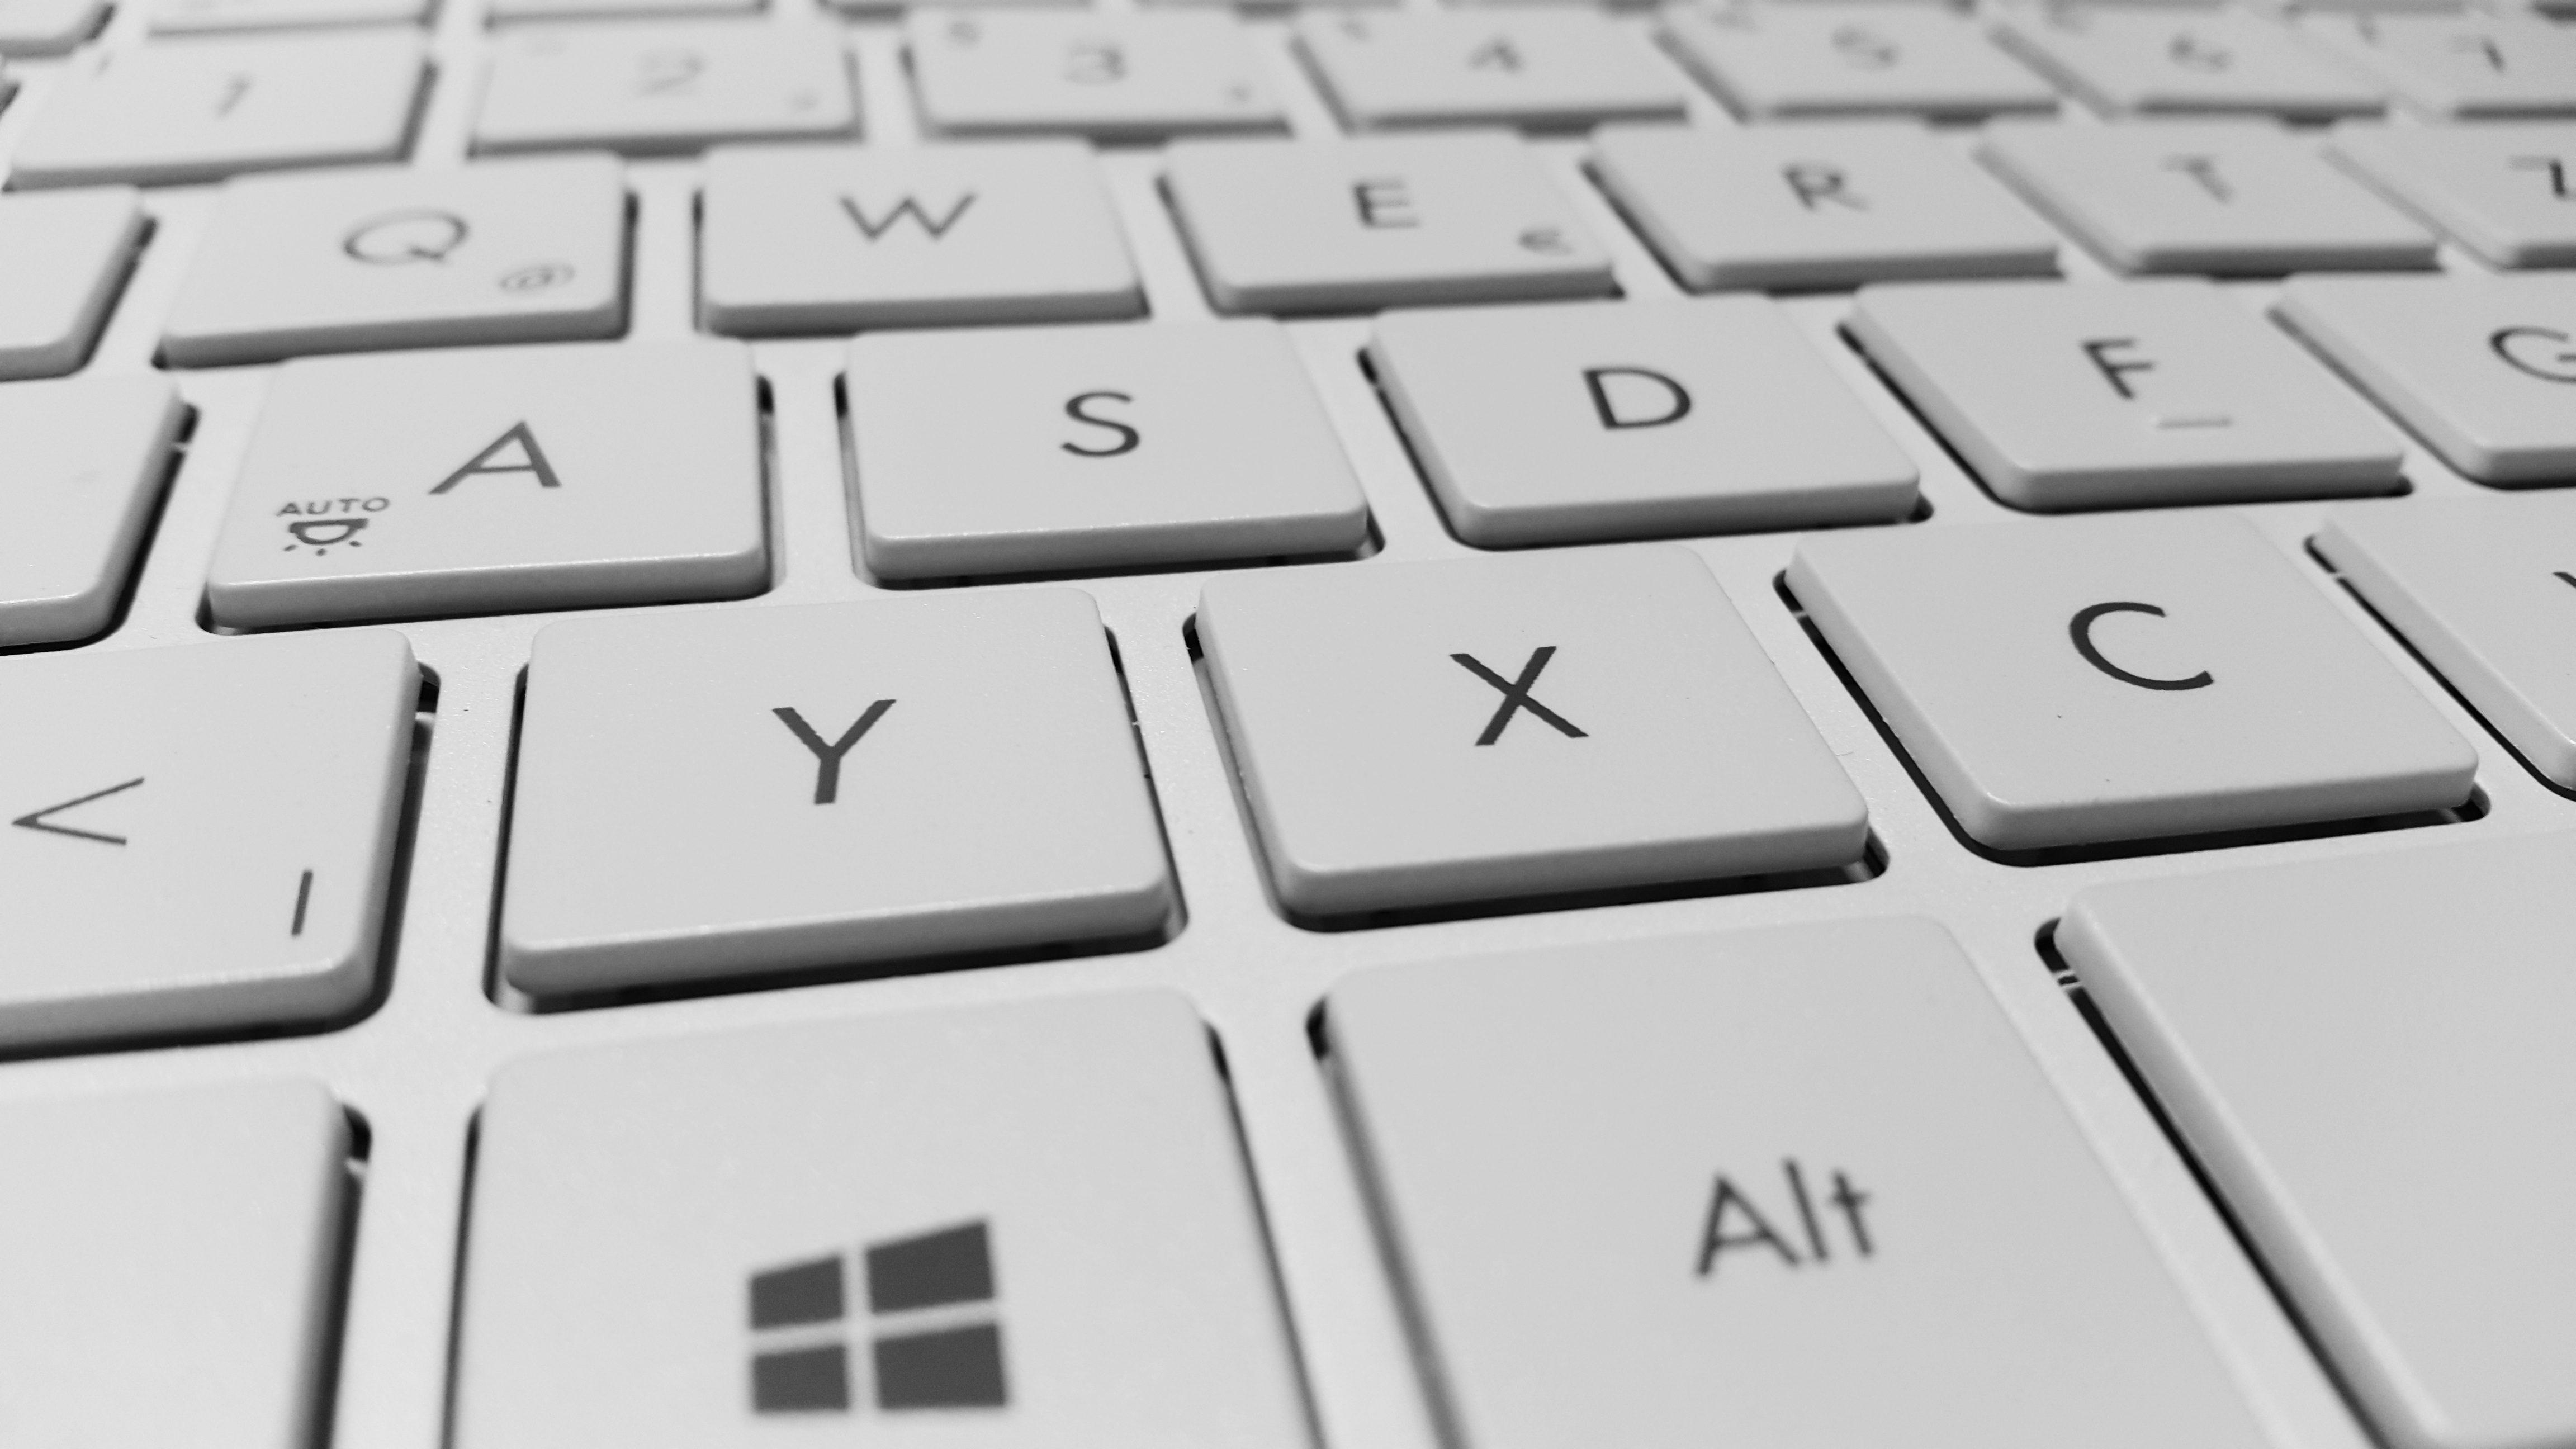 10 ways to save time using Windows 10 shortcuts